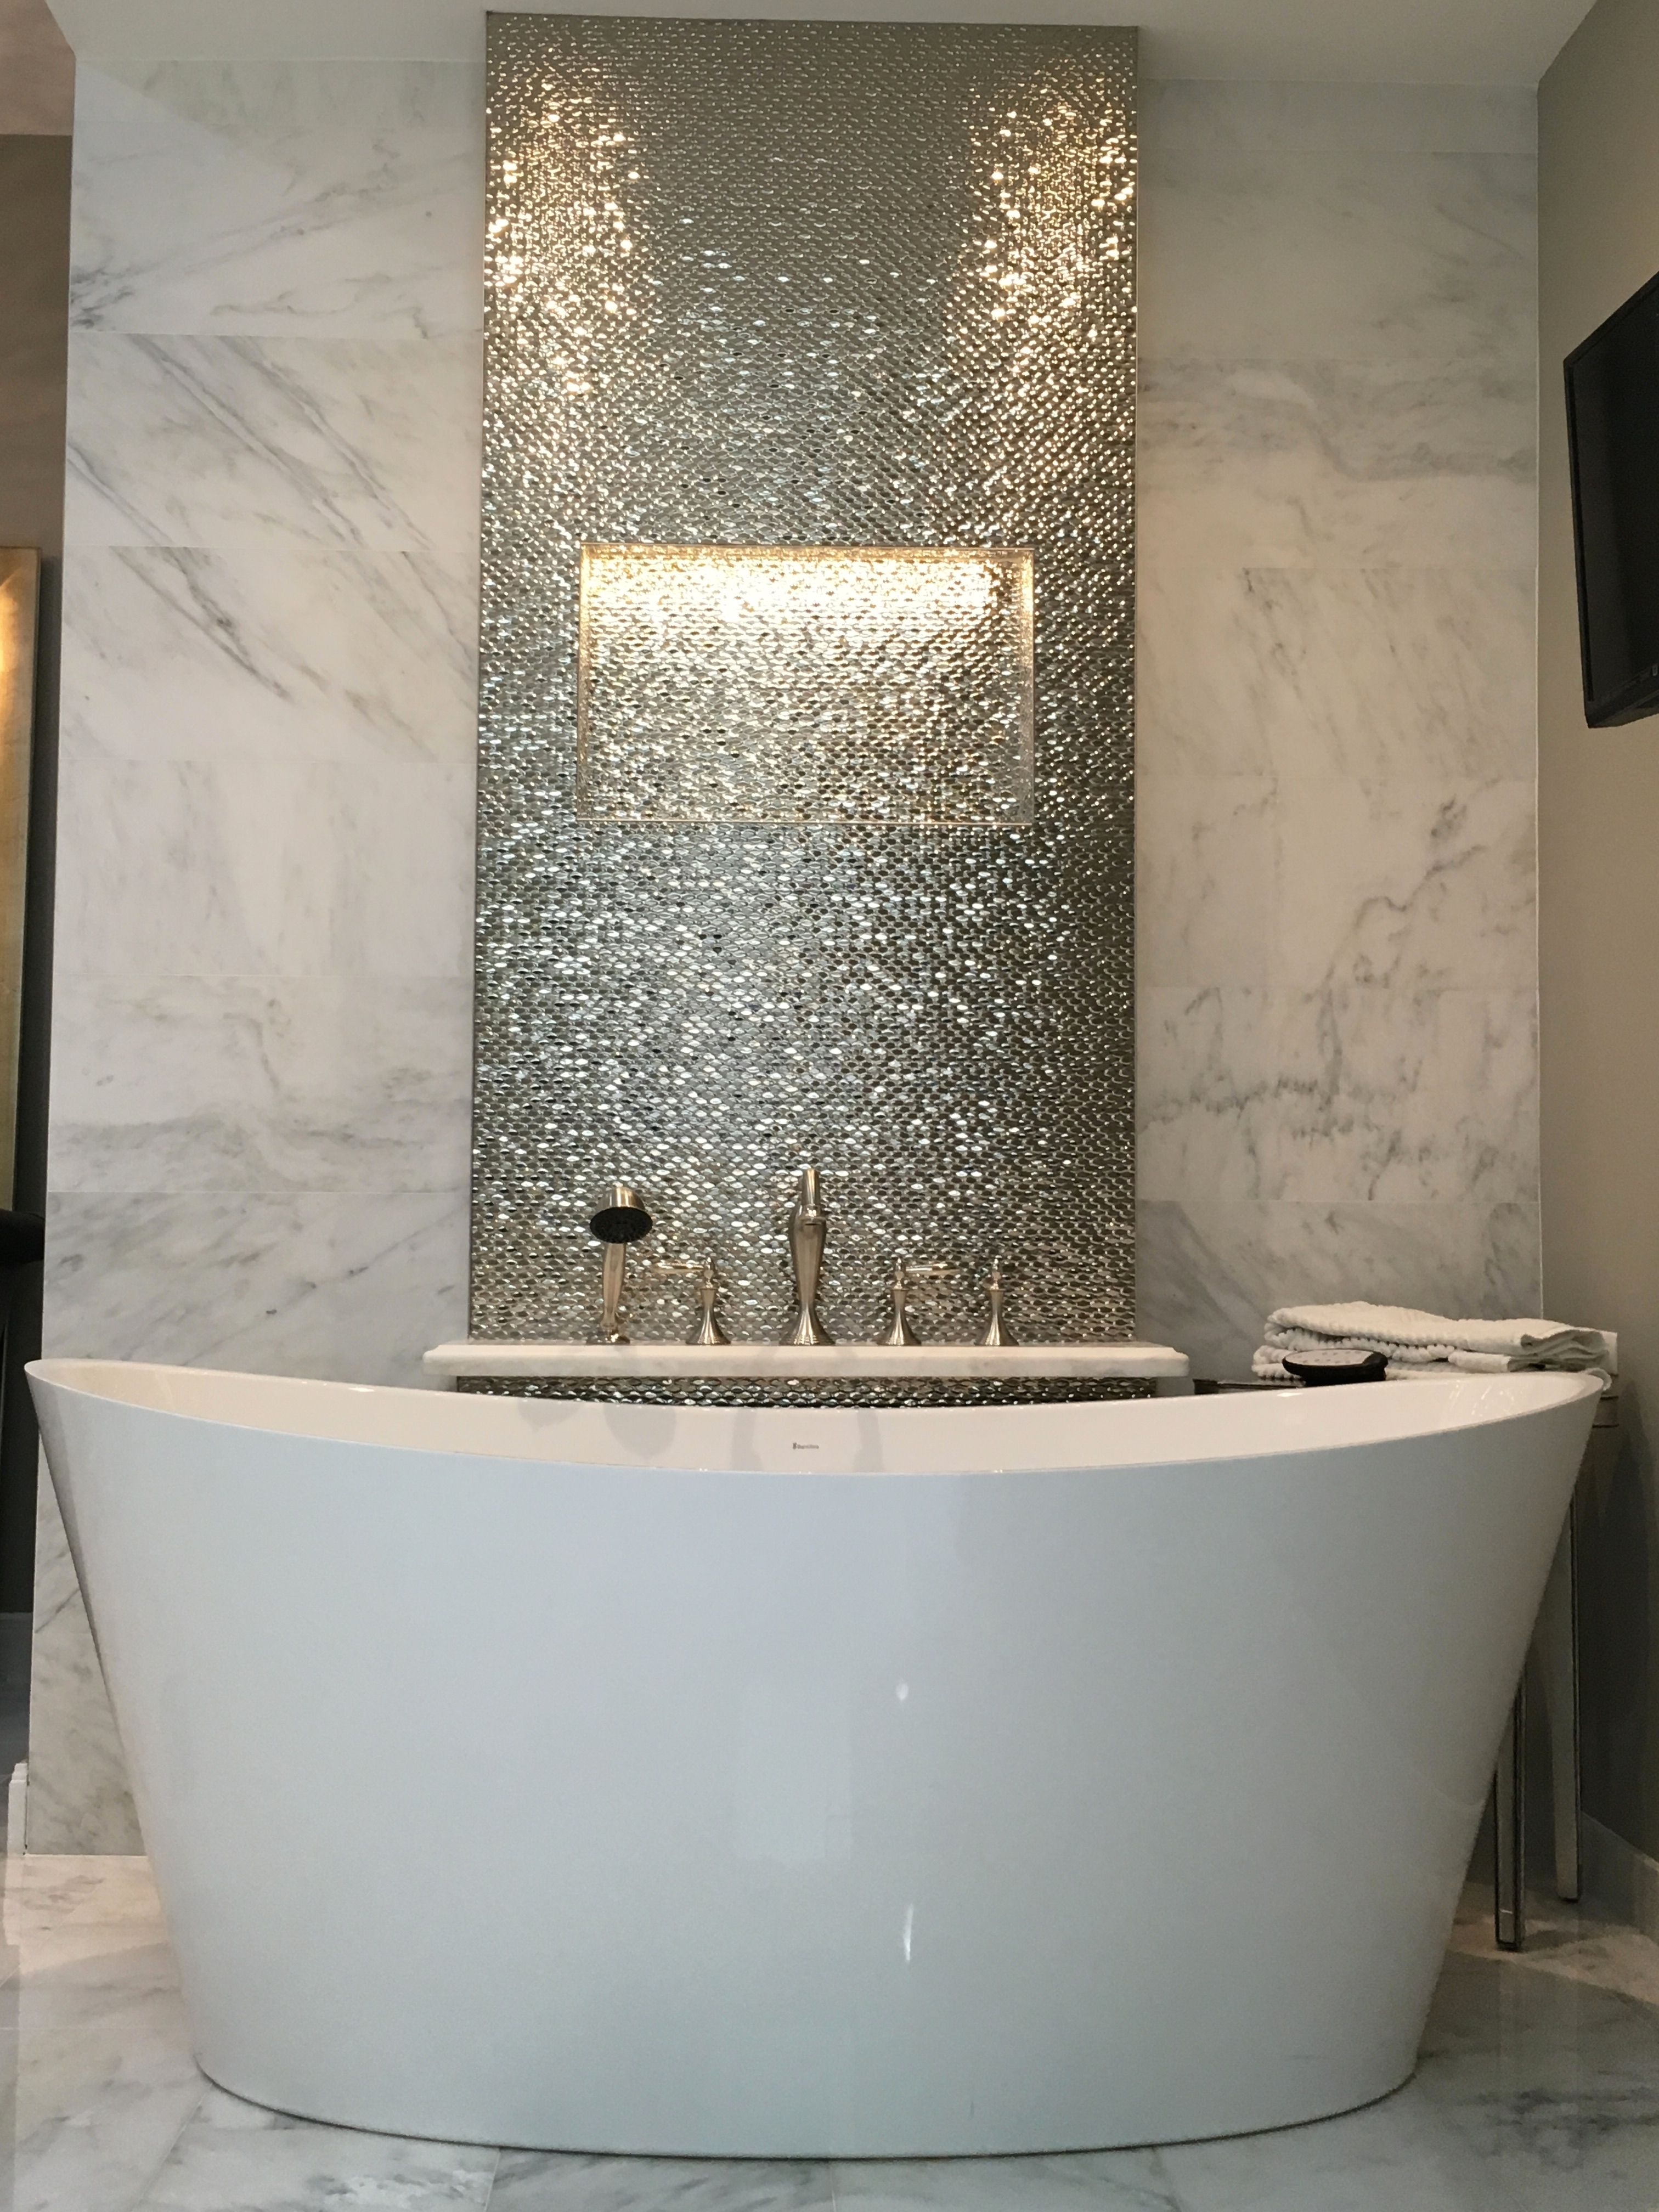 Evanescence 6636 Freestanding Tub With Metallic Wall Tiles By Bainultra